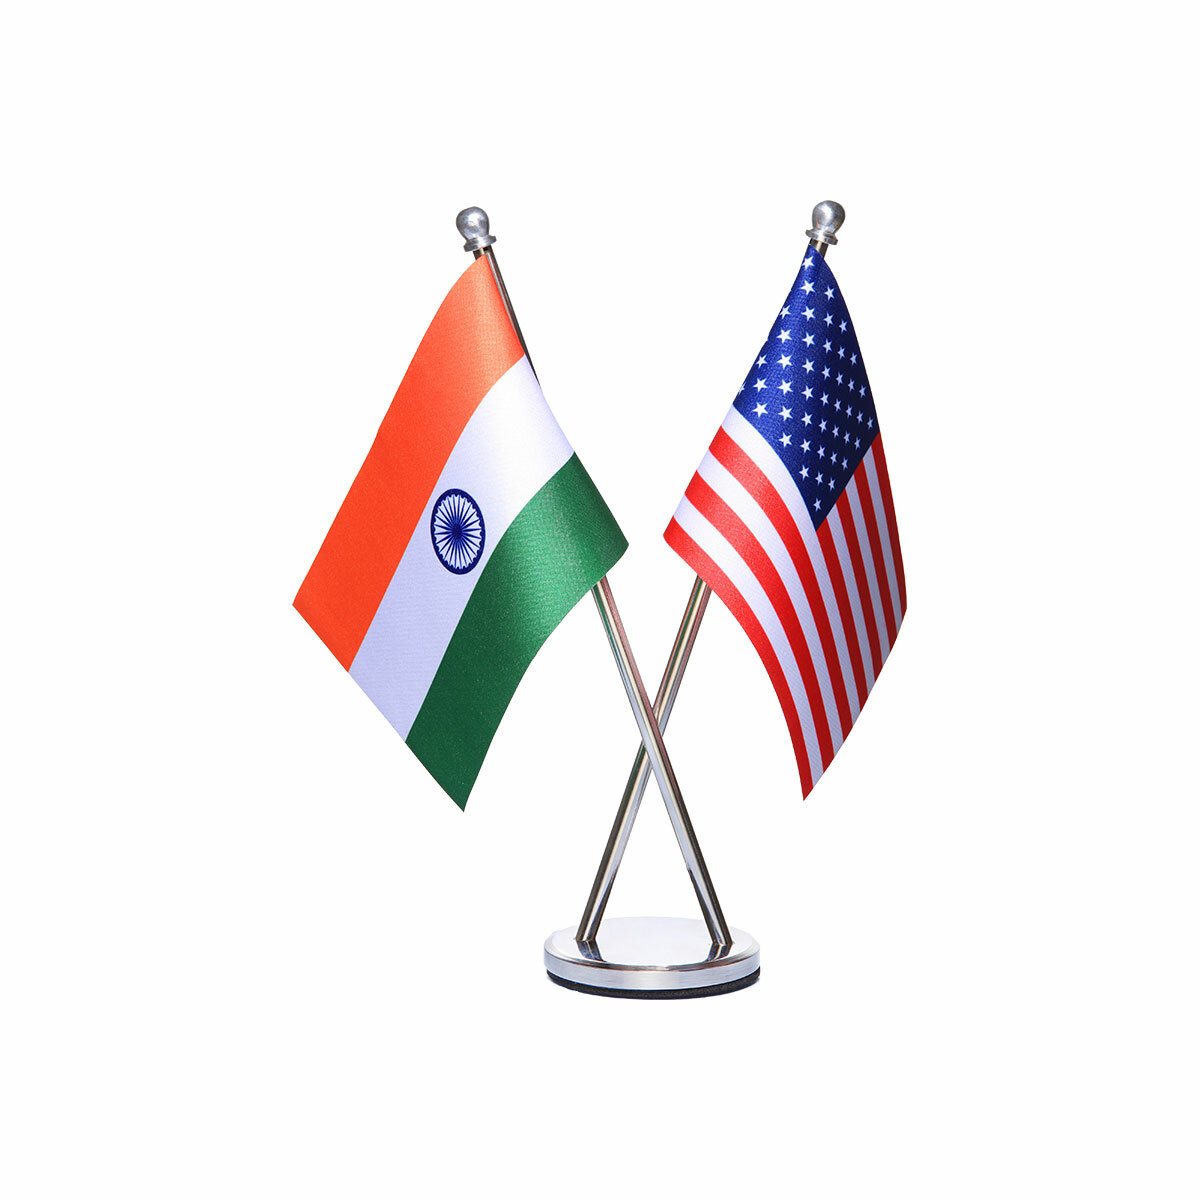 india and usa cross table or desk flag with a stainless steel stand / base